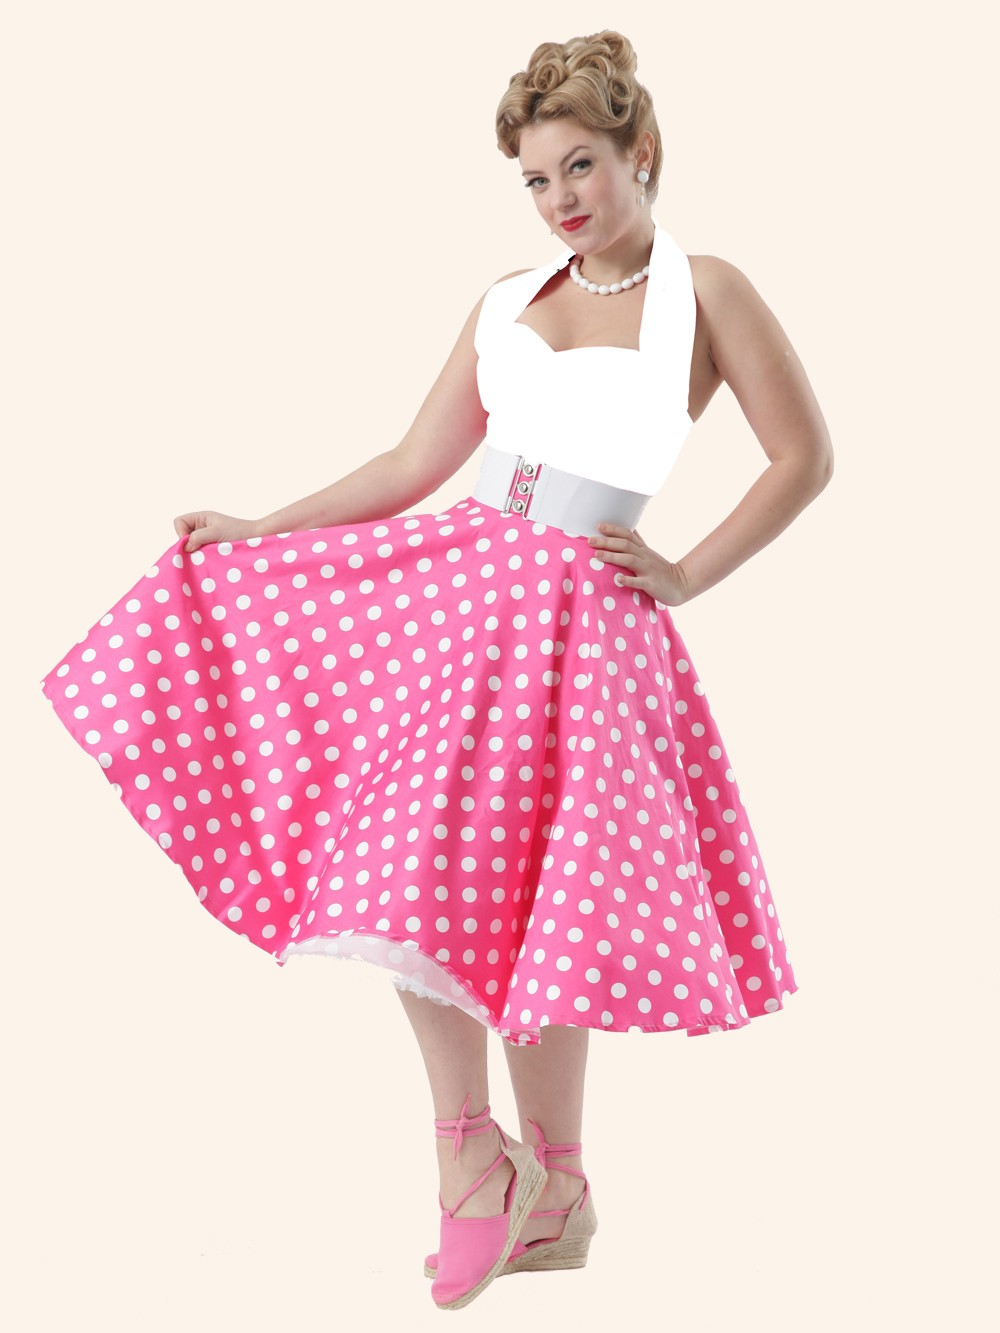 1950s-circle-skirt-cerise-white-polka-p1045-2936_zoom 25+ Women Engagement Outfit Ideas Coming in 2018